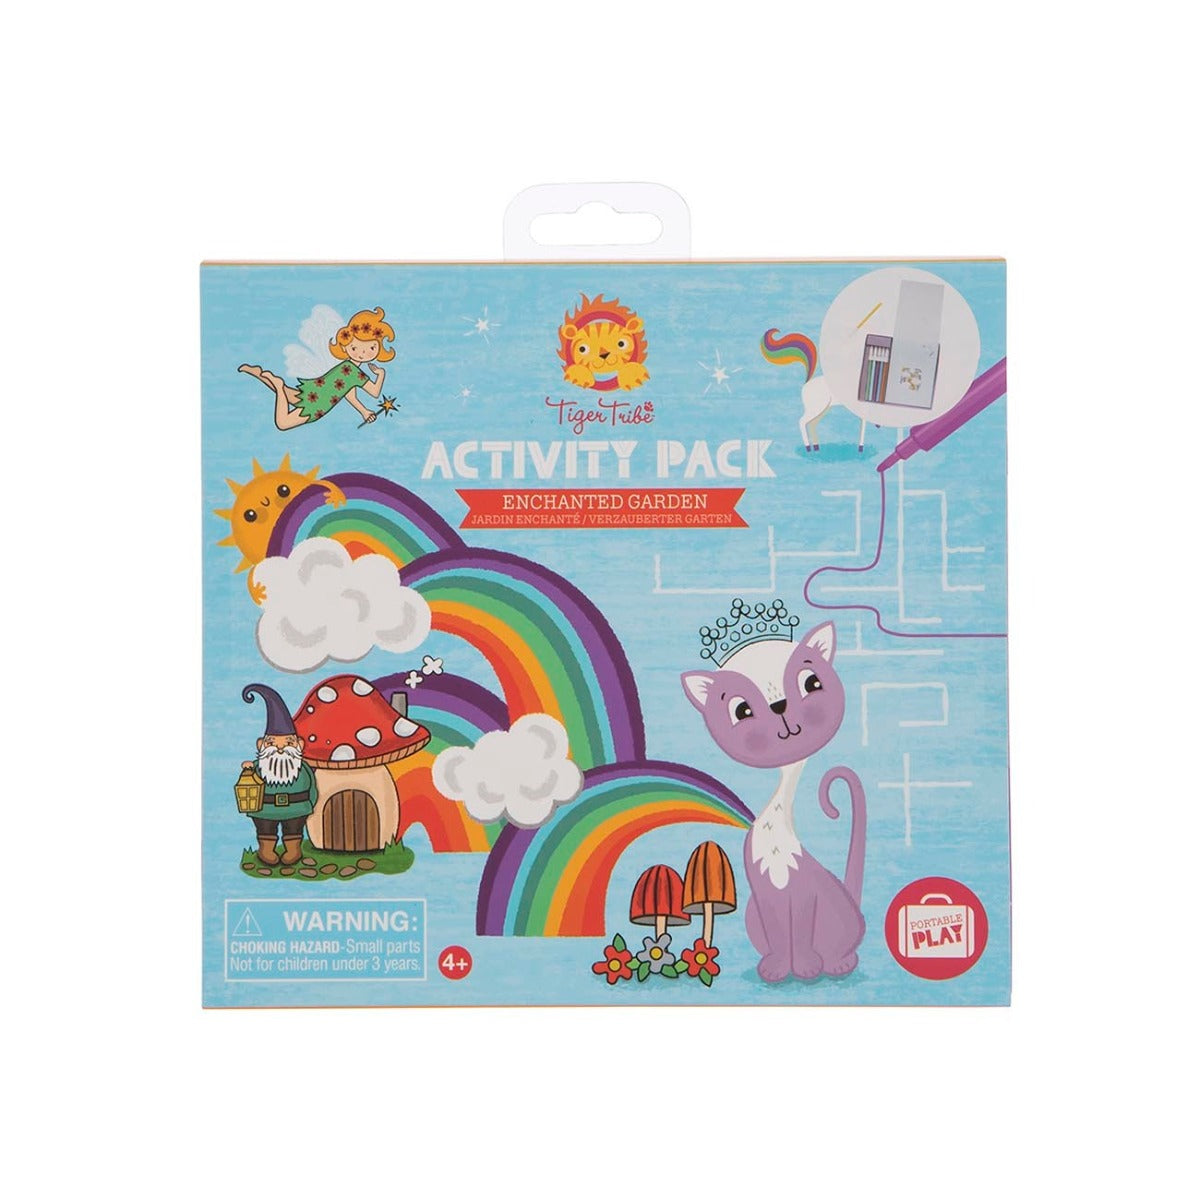 Tiger Tribe Activity Pack Enchanted Garden